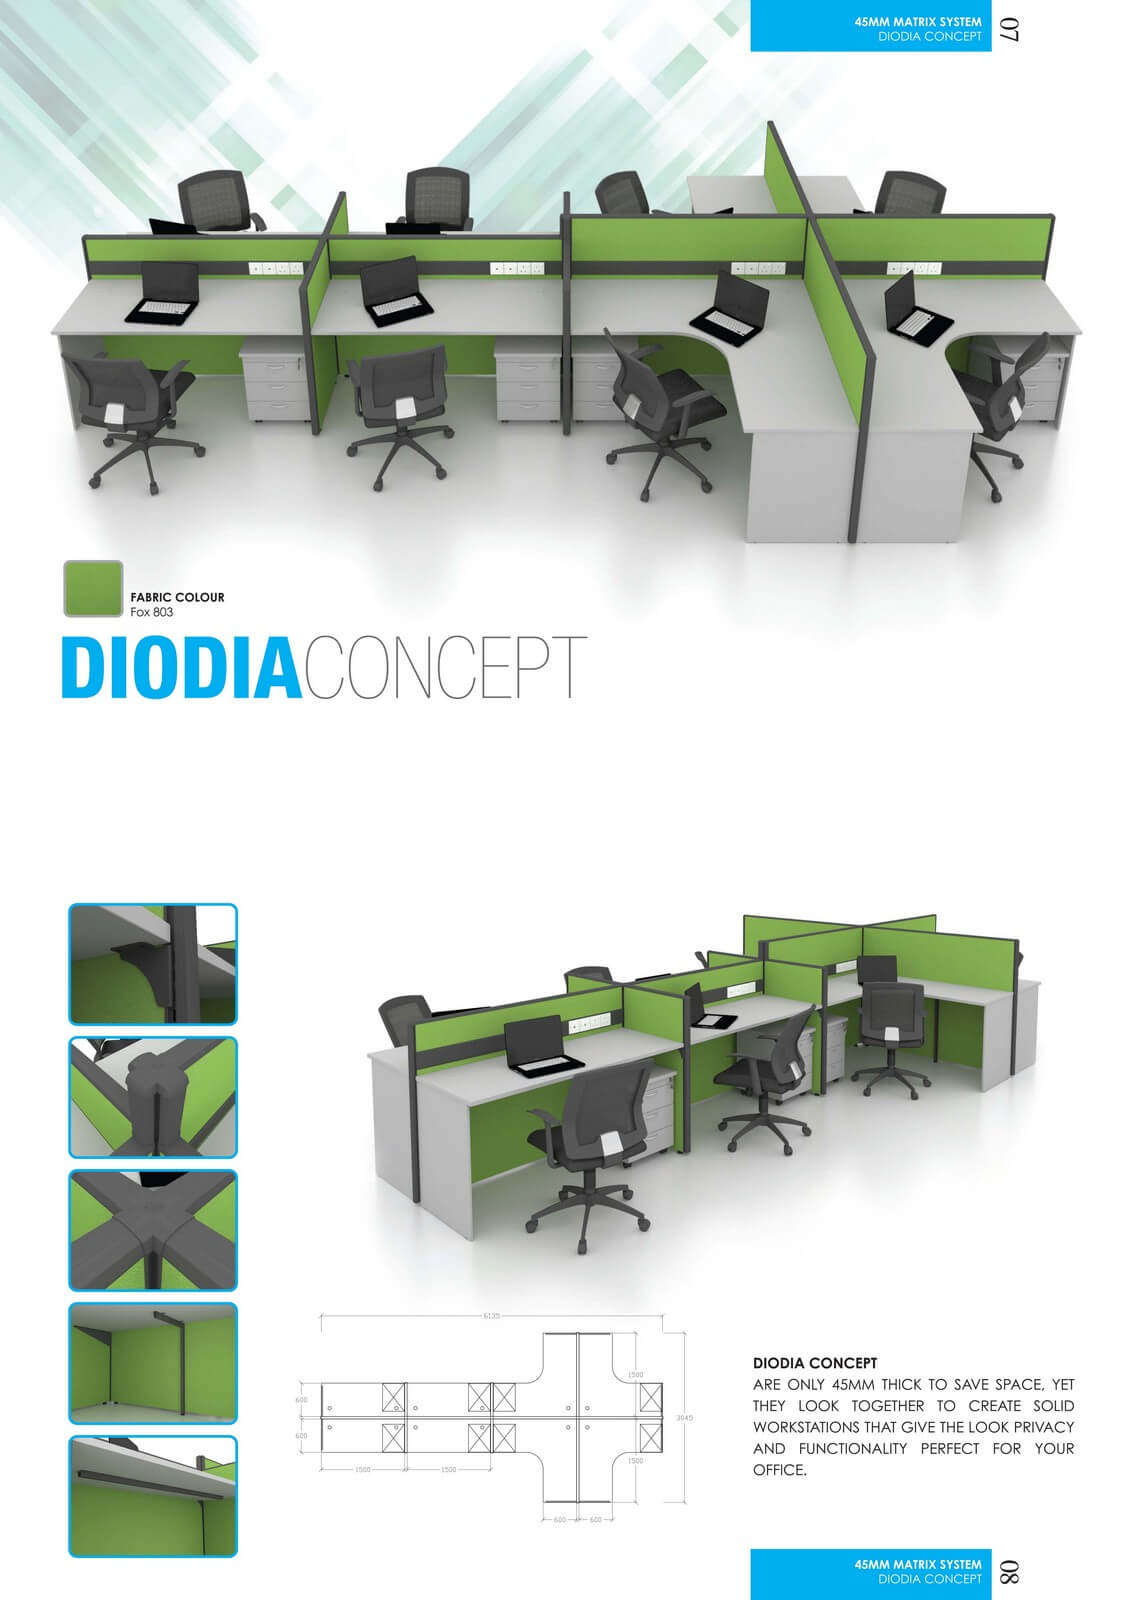 Office Workstation Diodia Concept